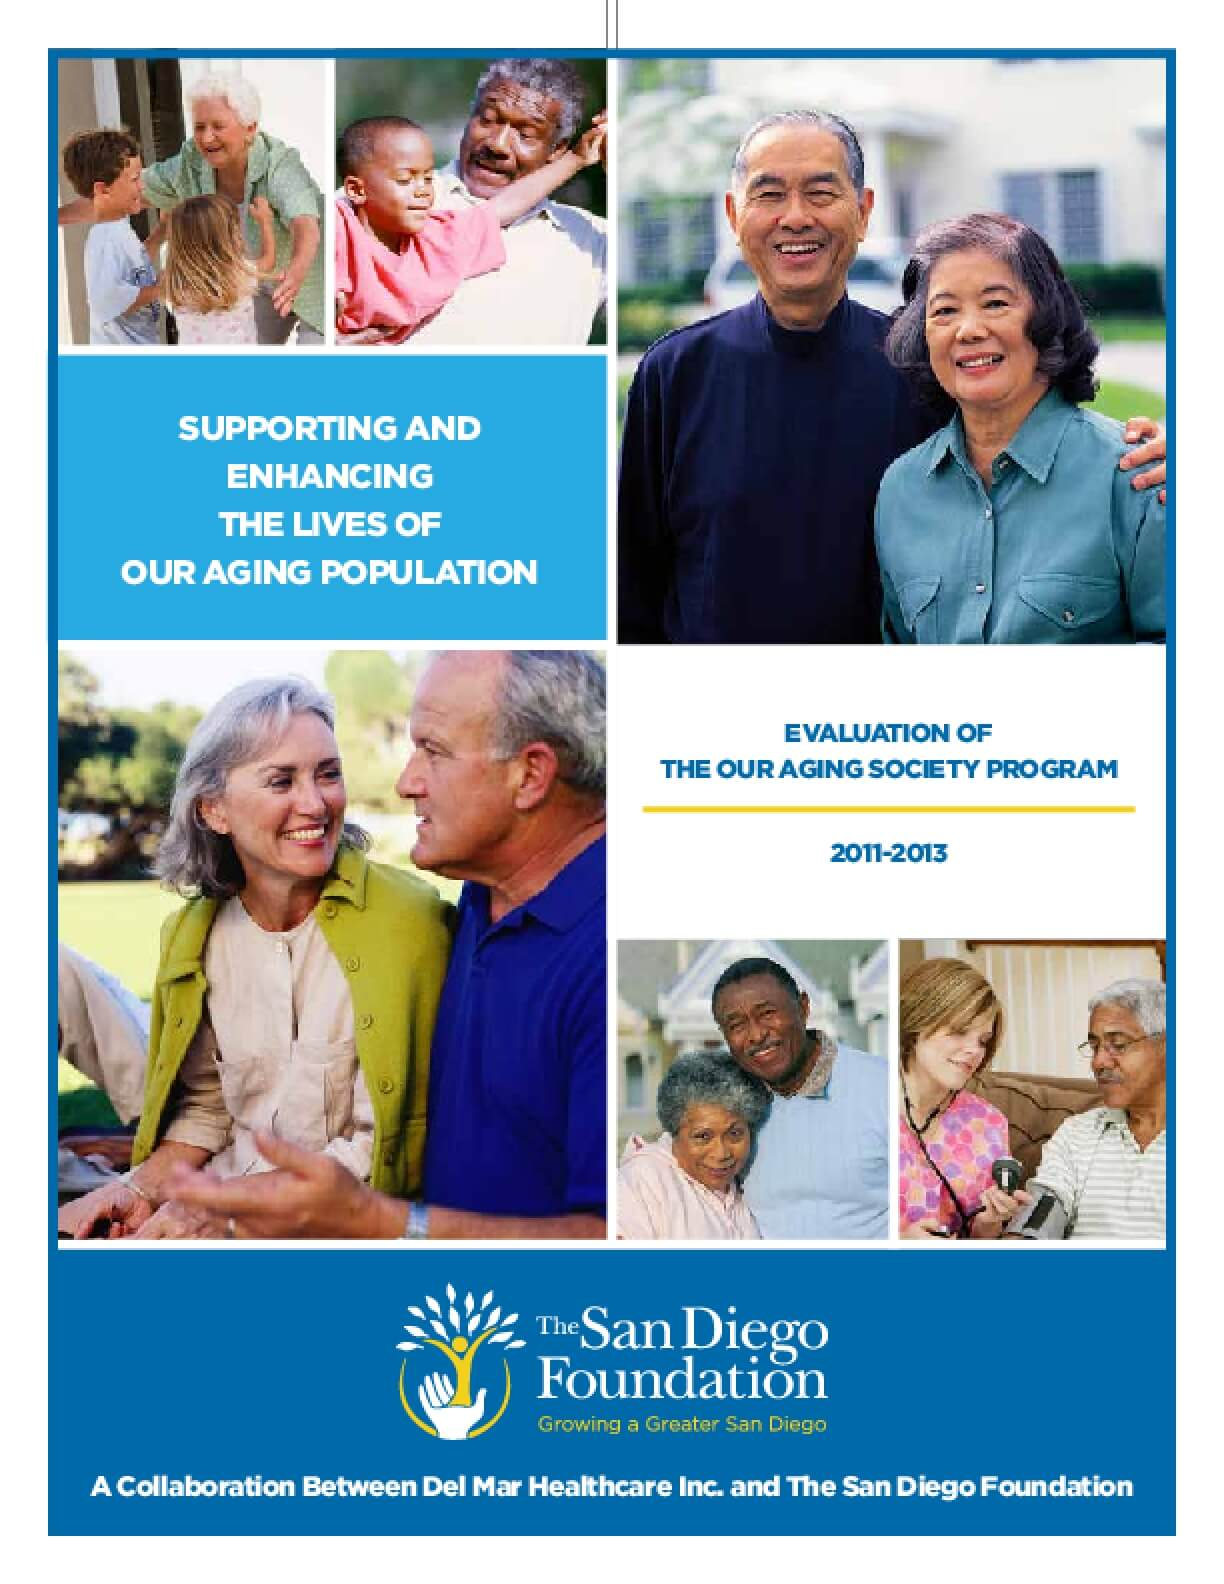 Supporting and Enhancing the Lives of Our Aging Population: Evaluation of Our Aging Society Program 2011-2013